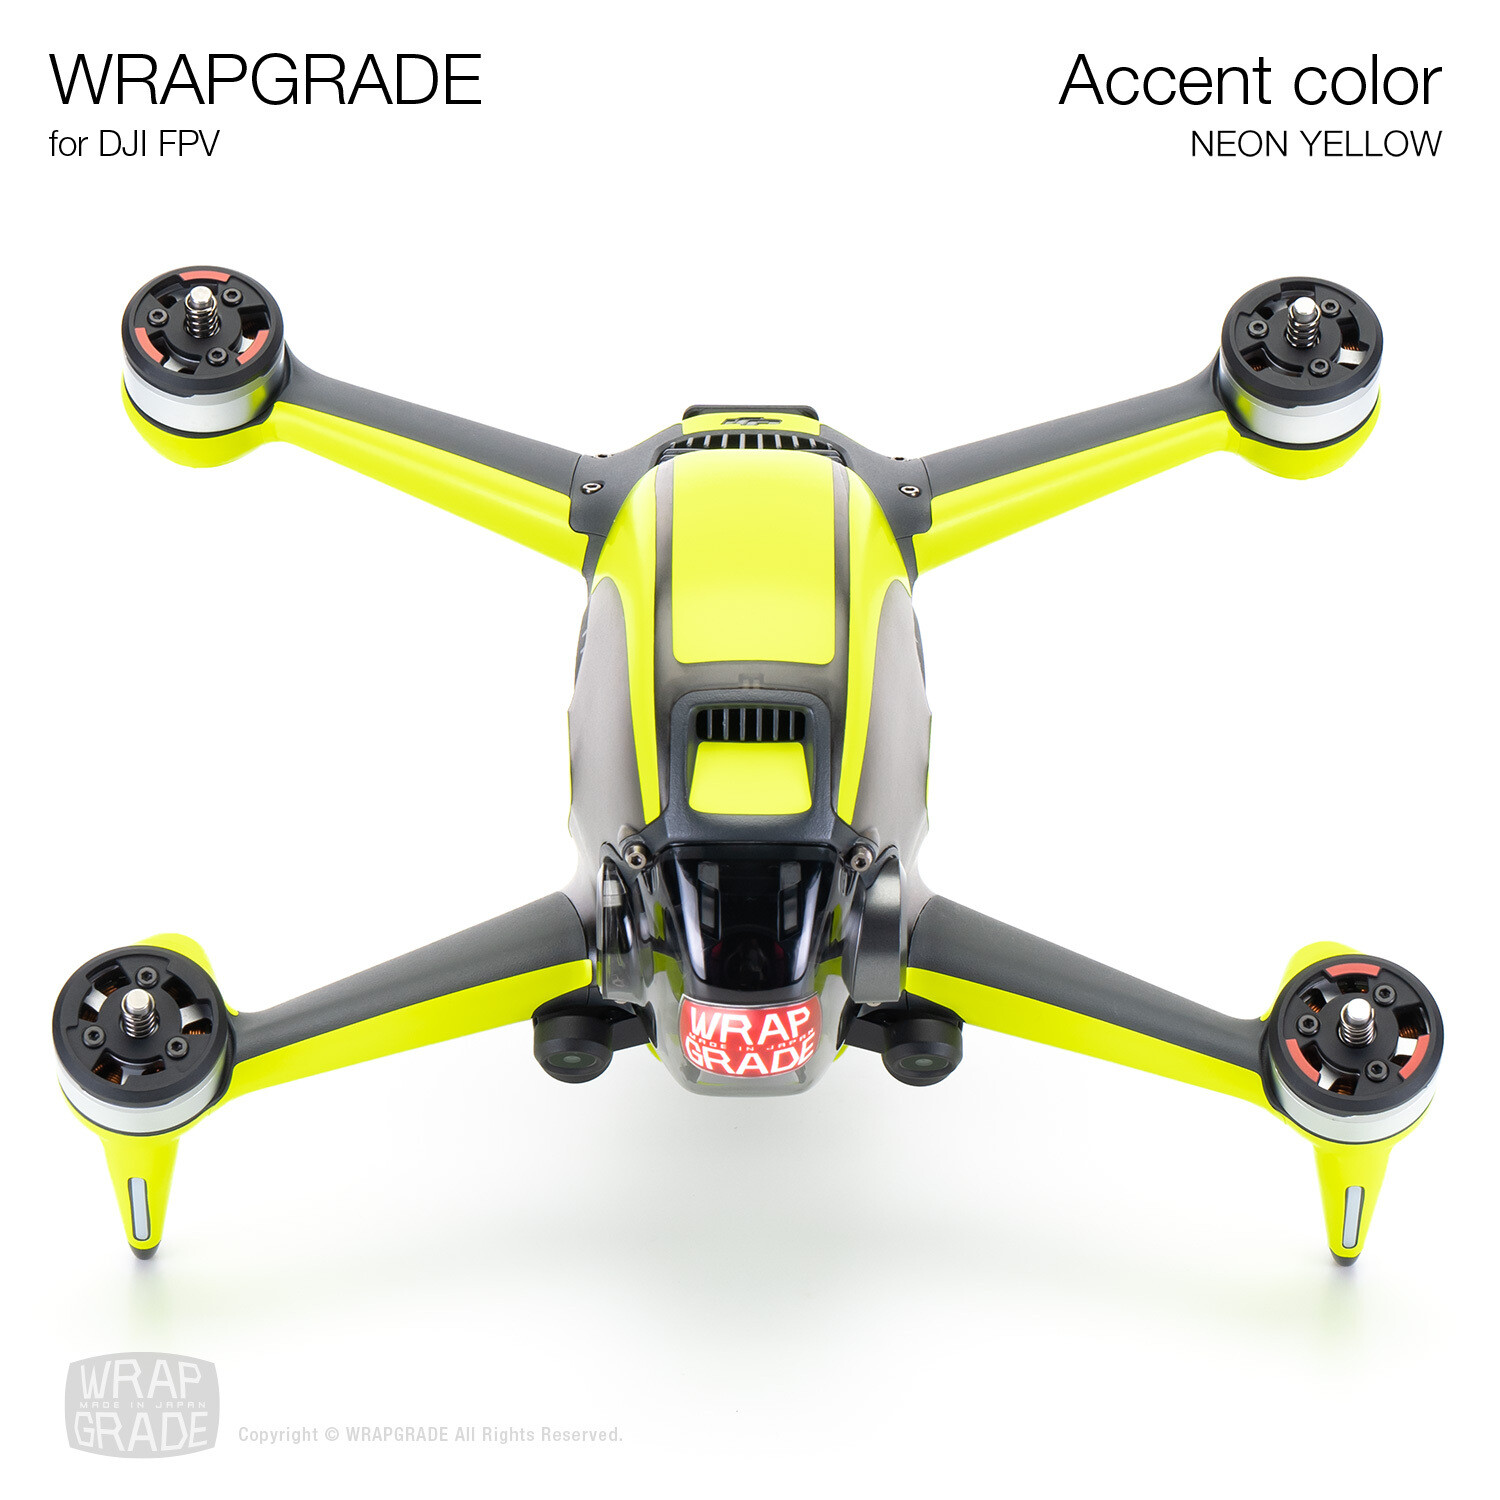 WRAPGRADE for DJI FPV   Accent color (NEON YELLOW)